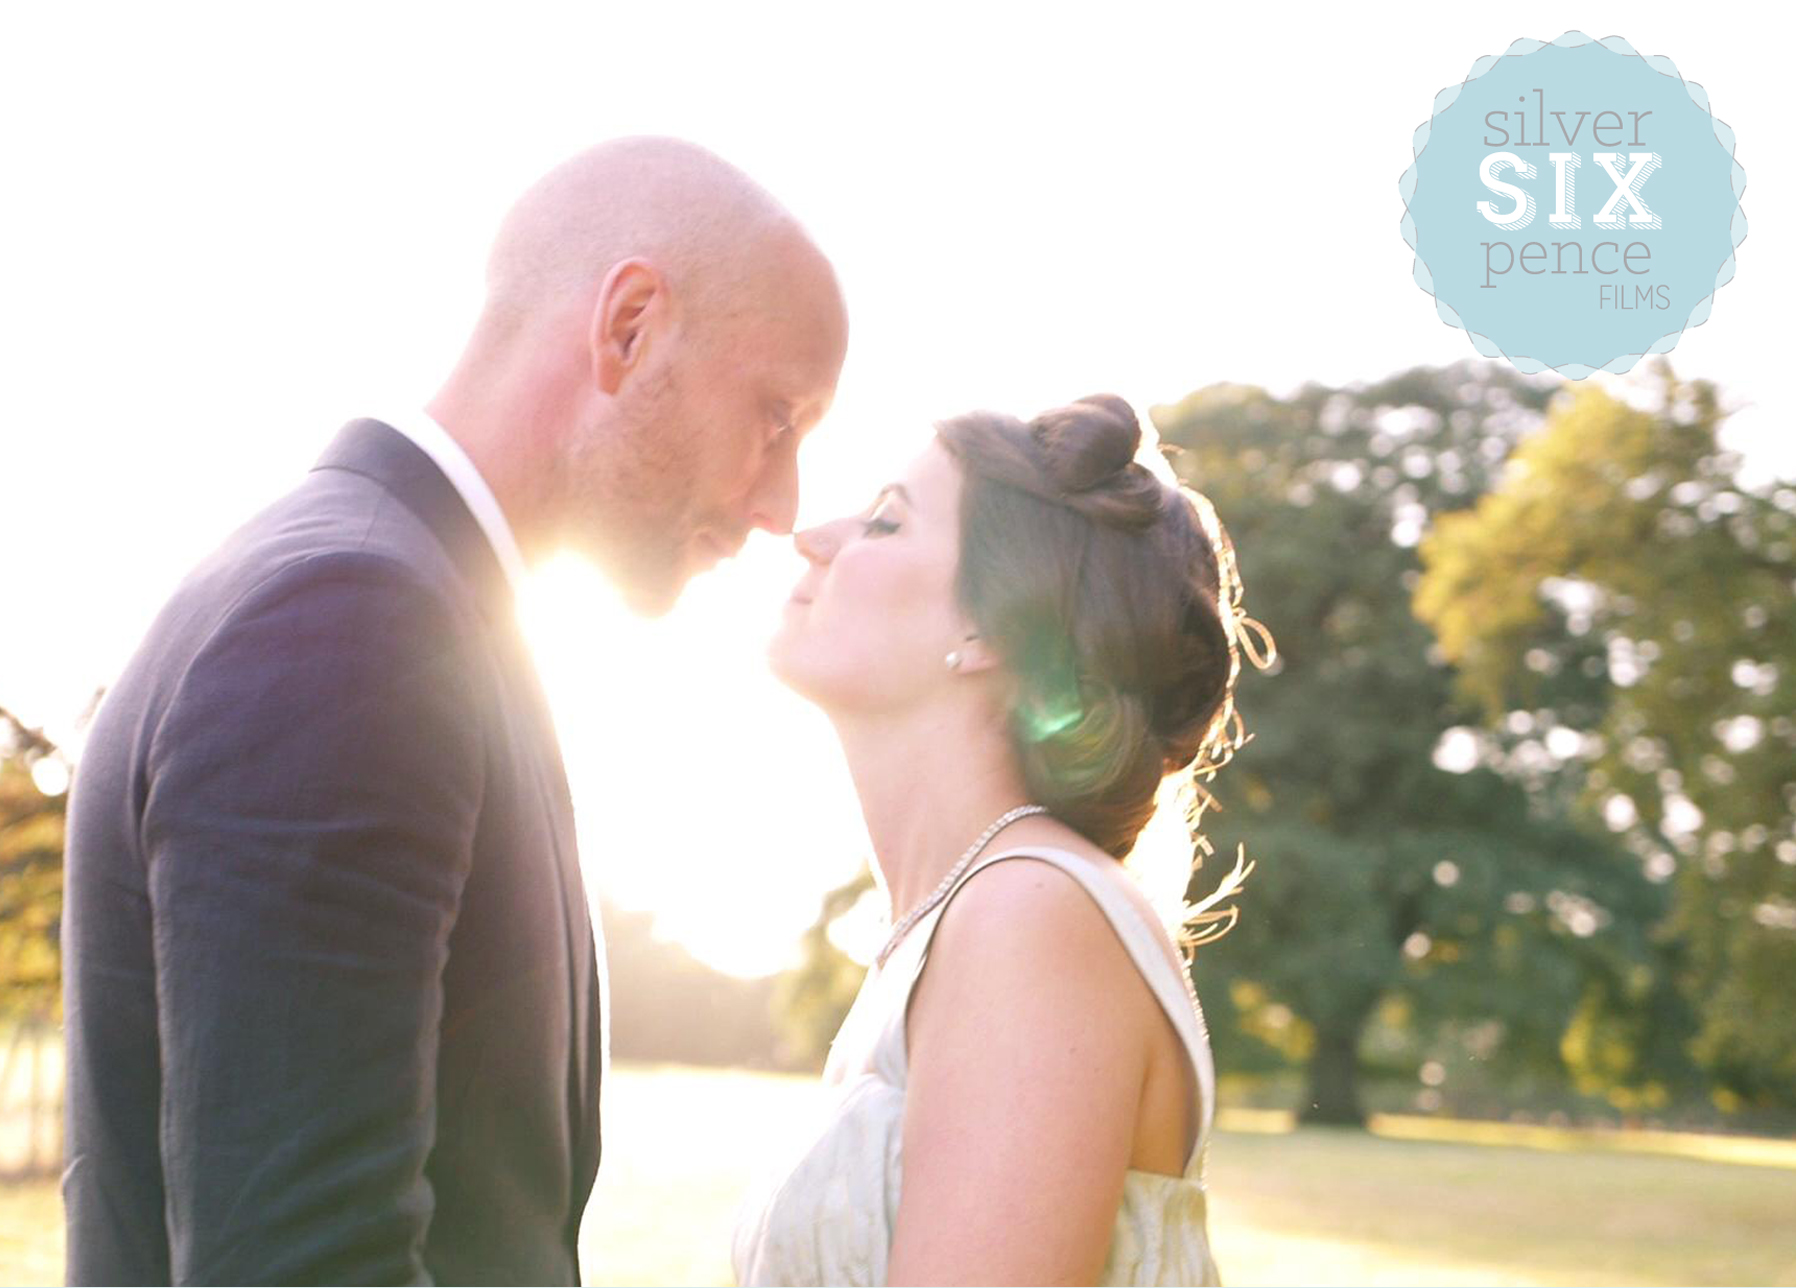 Silver Sixpence Films capture beautiful, cinematic wedding films.